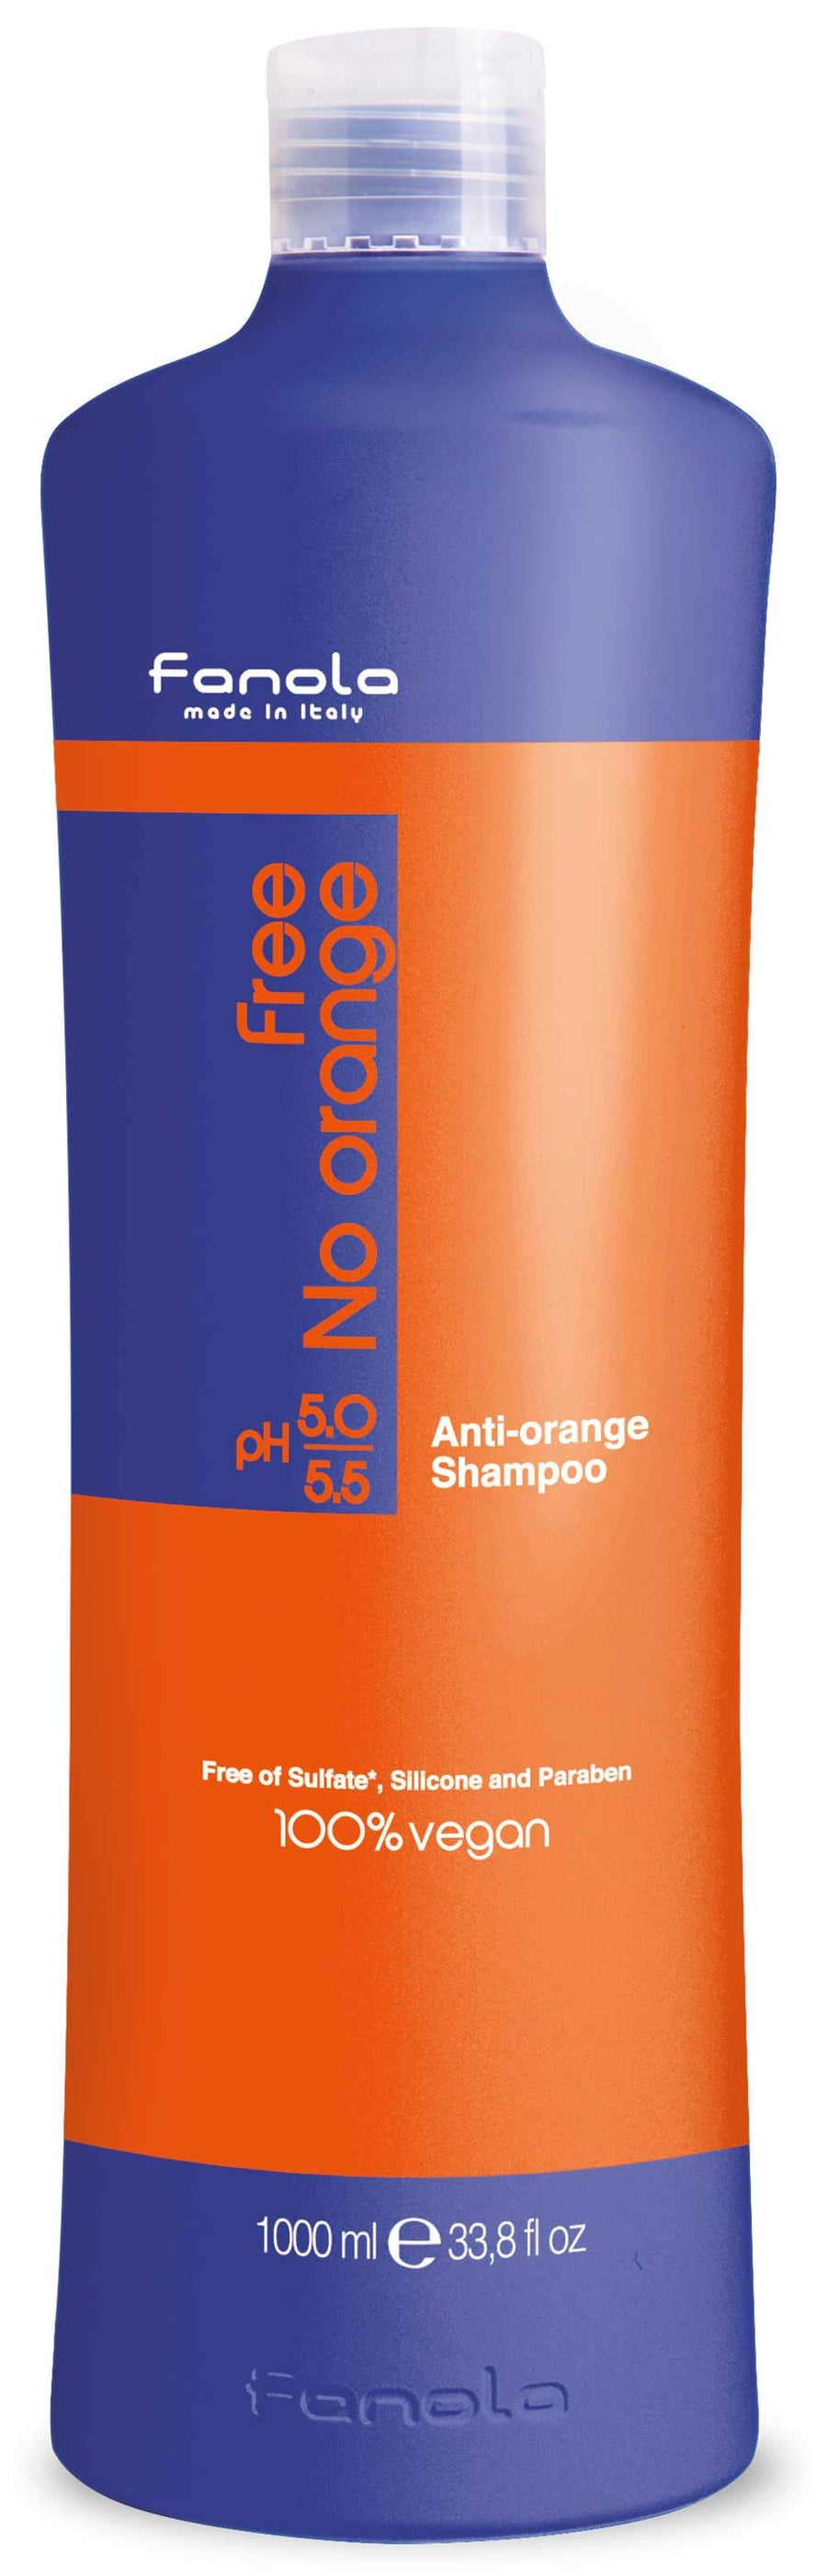 Fanola Free No Orange Vegan Shampoo or Mask Hair Shampoos Fanola Shampoo, 1000 ML